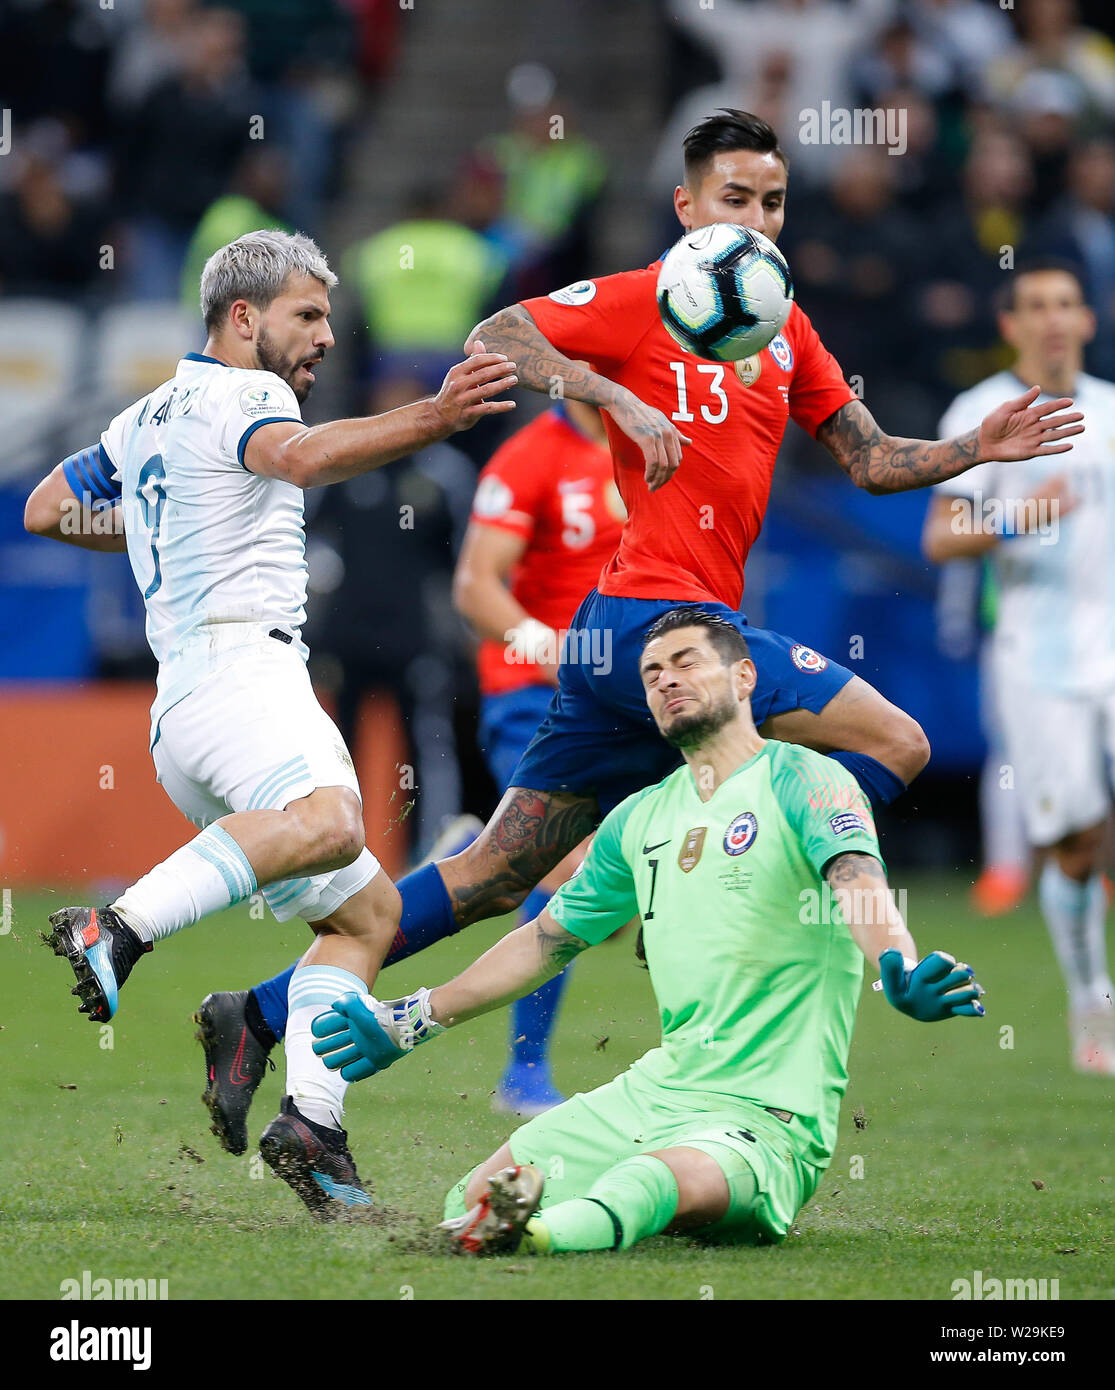 Sao Paulo, Brazil . 06th July, 2019. SÃO PAULO, SP - 06.07.2019: ARGENTINA VS. CHILE - Sergio Kun Aguero of Argentina kicks and Gabriel Arias of Chile defends during match between Argentina and Chile, valid for the dispute of the third place of Copa America 2019, held this Saturday (06) at the Corinthians Arena in São Paulo, SP. (Photo: Marcelo Machado de Melo/Fotoarena) Credit: Foto Arena LTDA/Alamy Live News - Stock Image